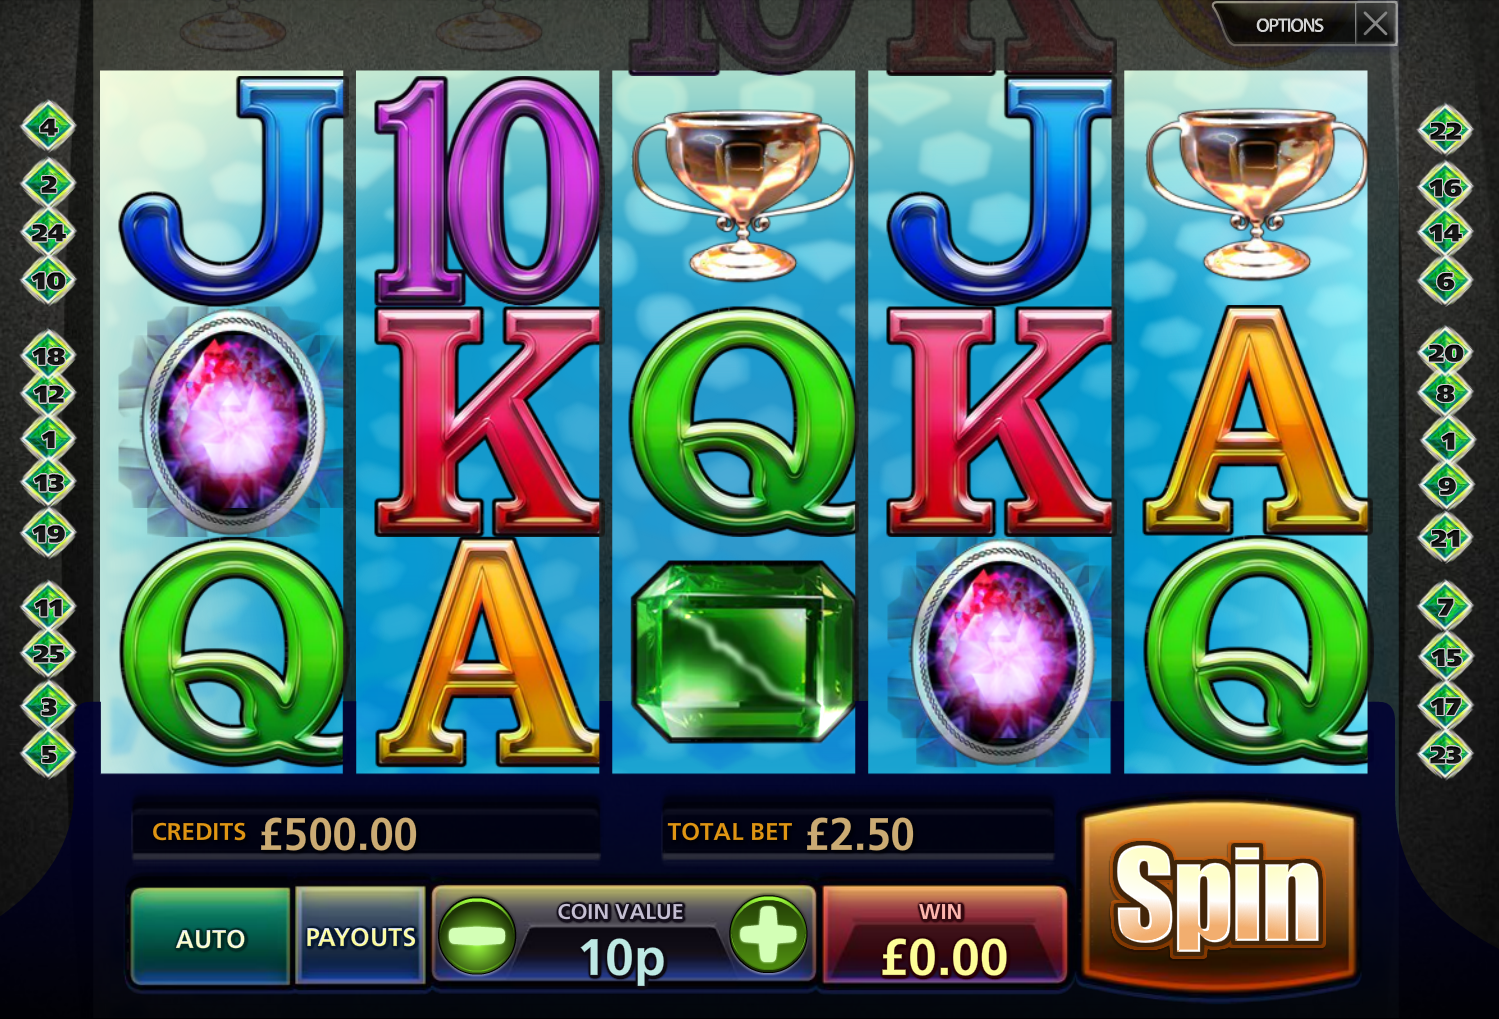 Igt slot machines for sale